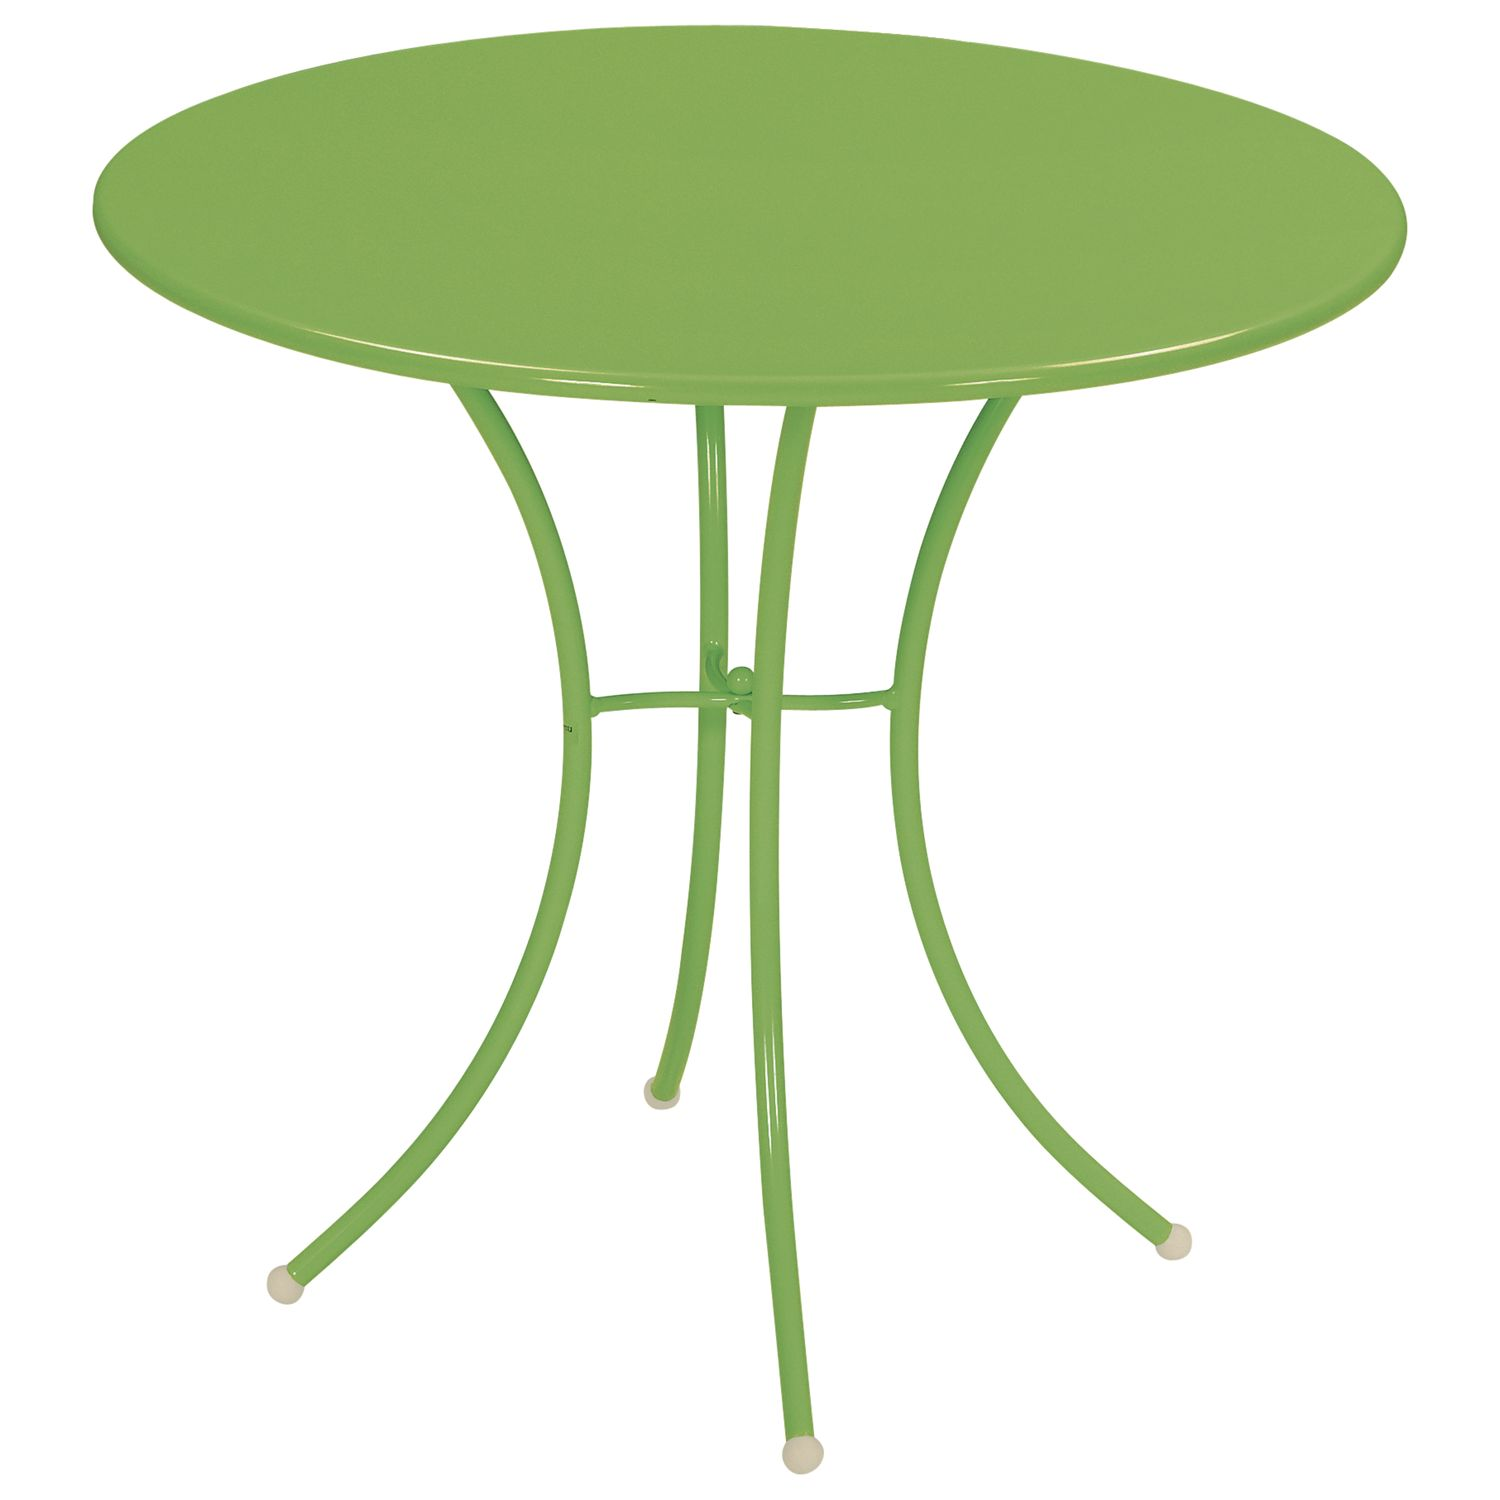 EMU Pigalle Round 2 Seater Outdoor Dining Table